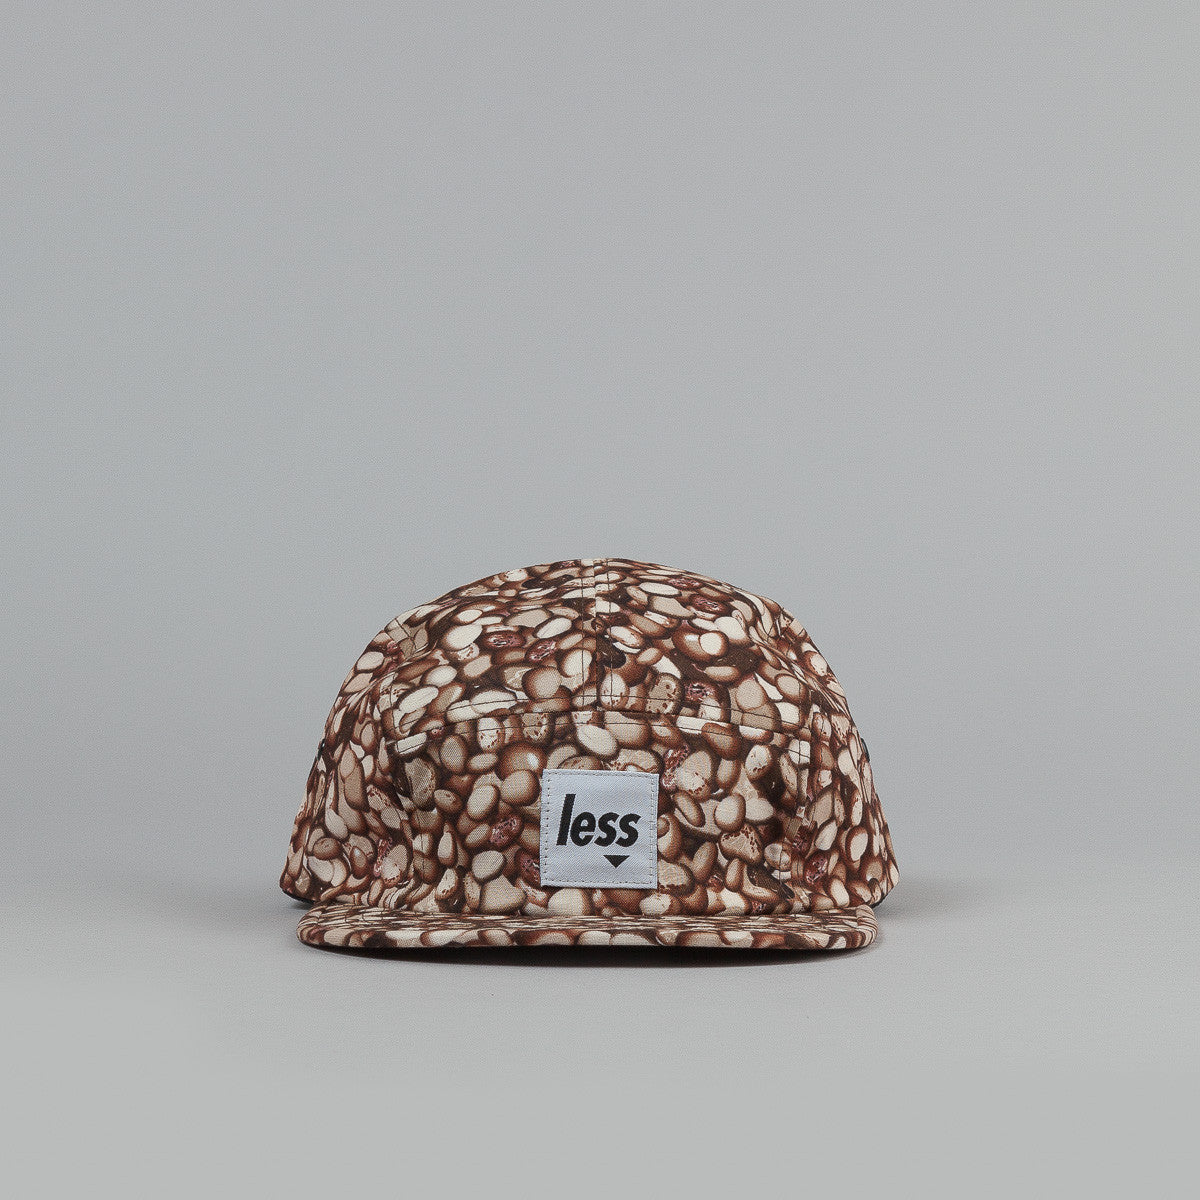 Less Square Logo Camp Cap Coffee Beans Pattern Brown